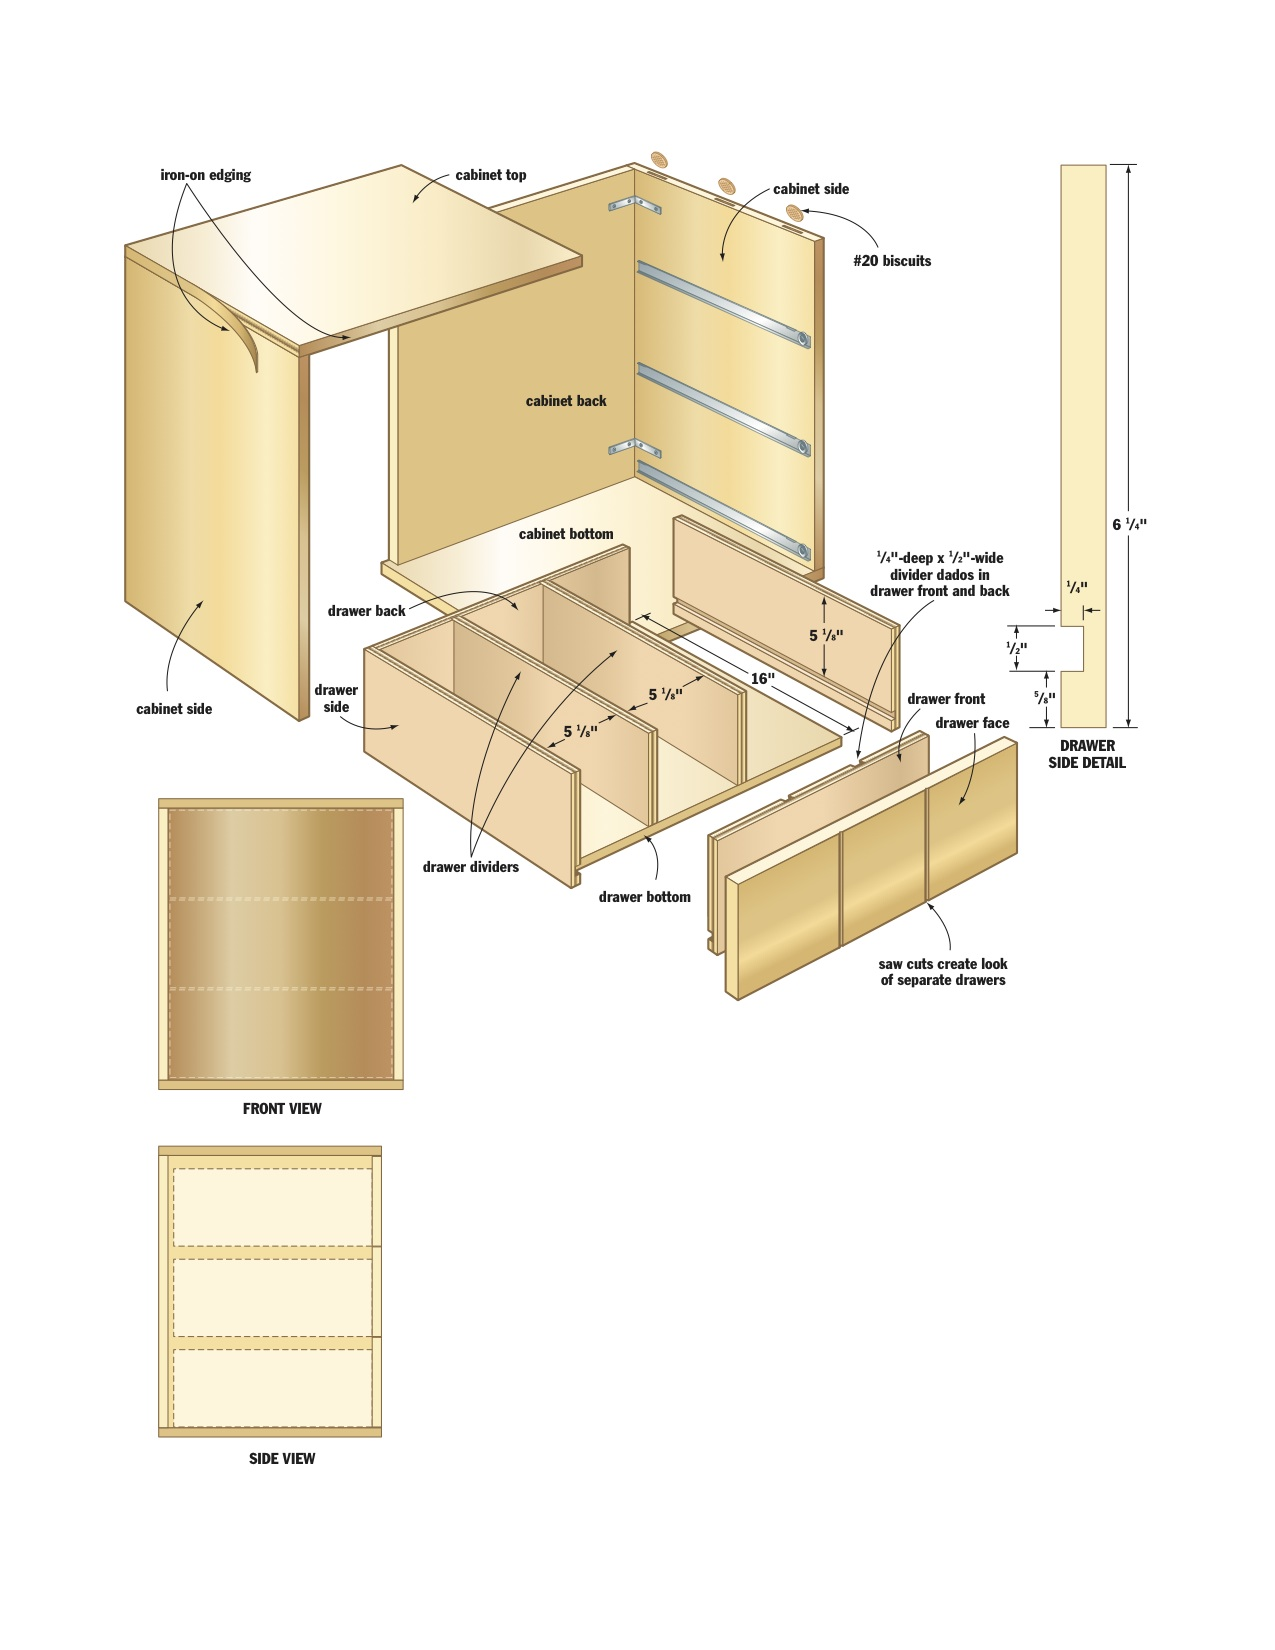 plans storage cabinets - How To Build Plans Storage Cabinets Plans Woodworking Plans A